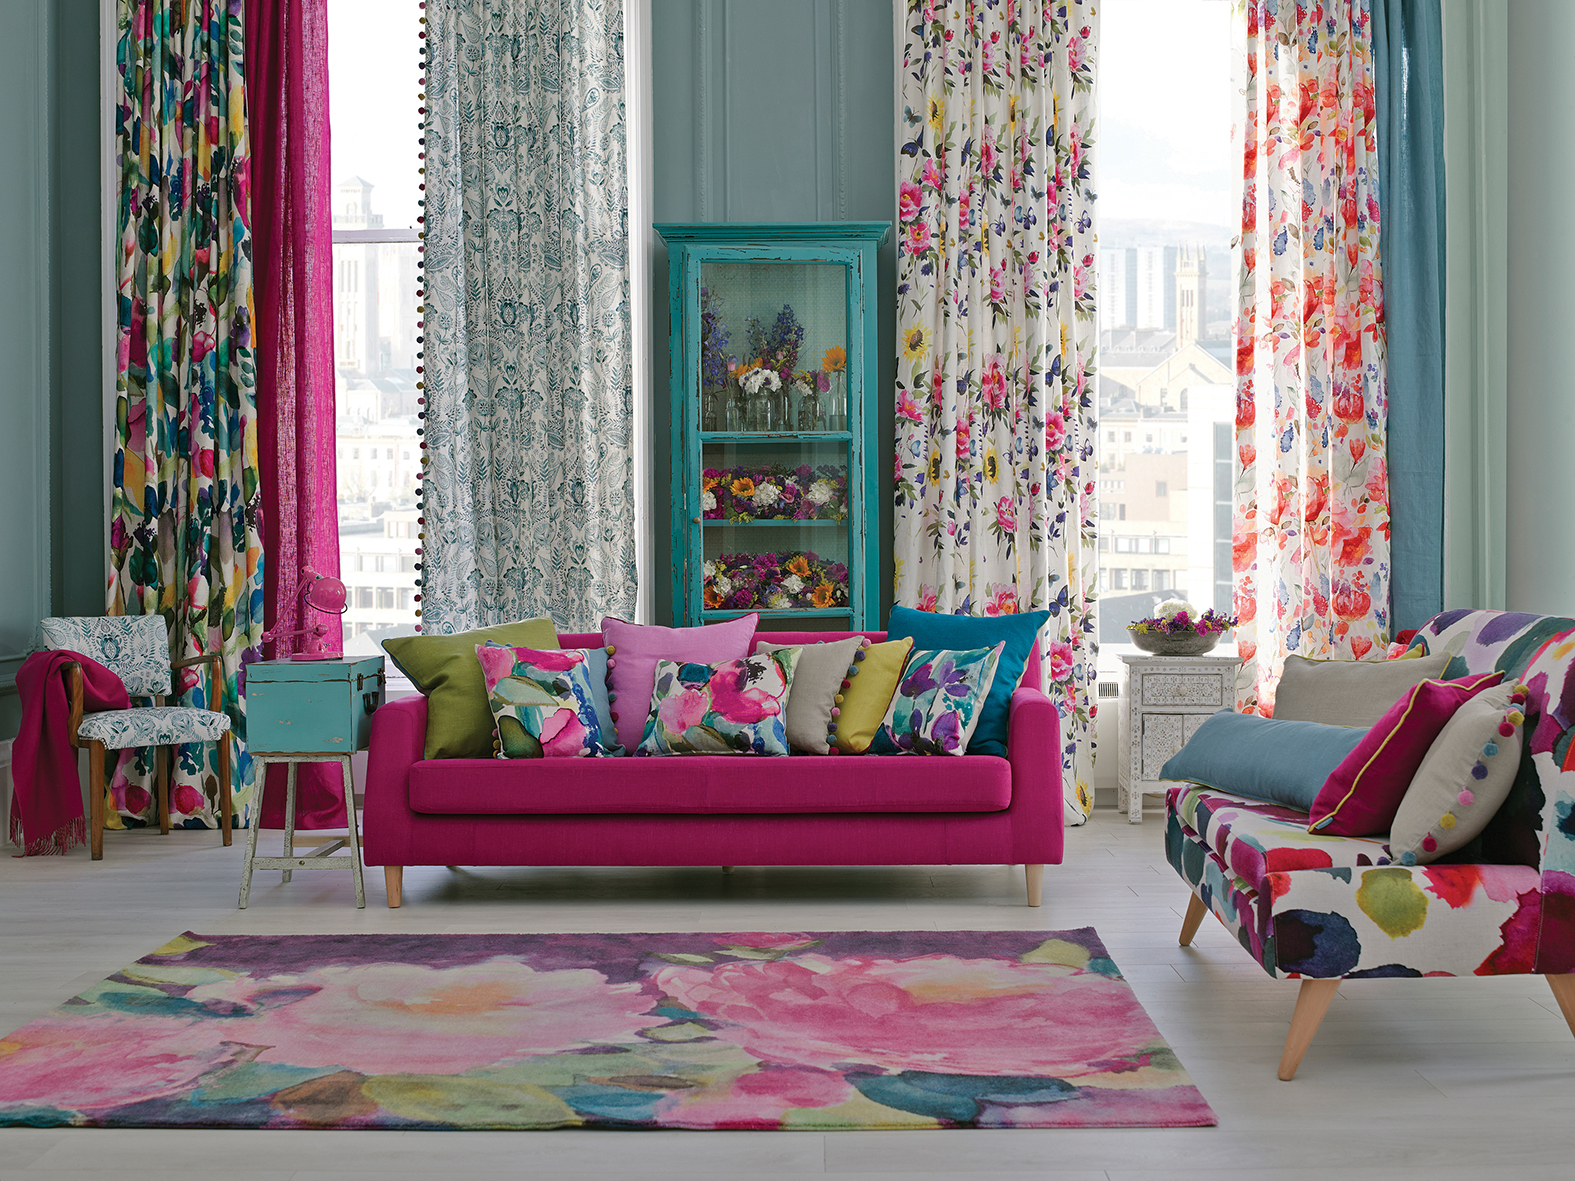 2019 Holi Decoration Ideas for Your Home Interior | My Decorative